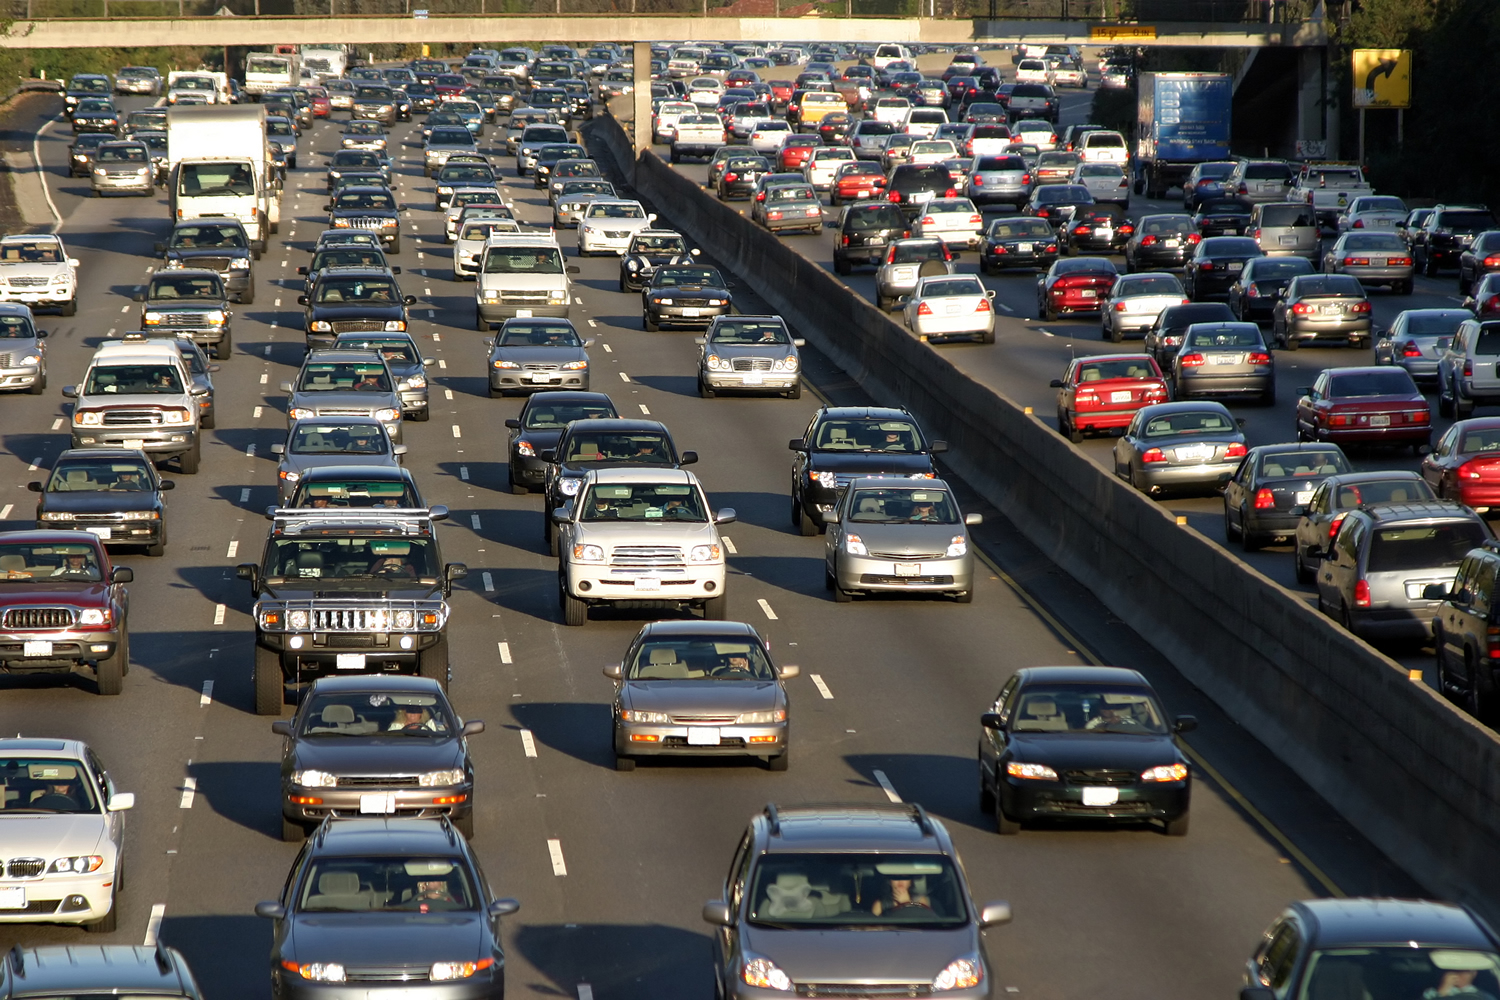 Public Workshops Scheduled for I-270, Capital Beltway Traffic Relief